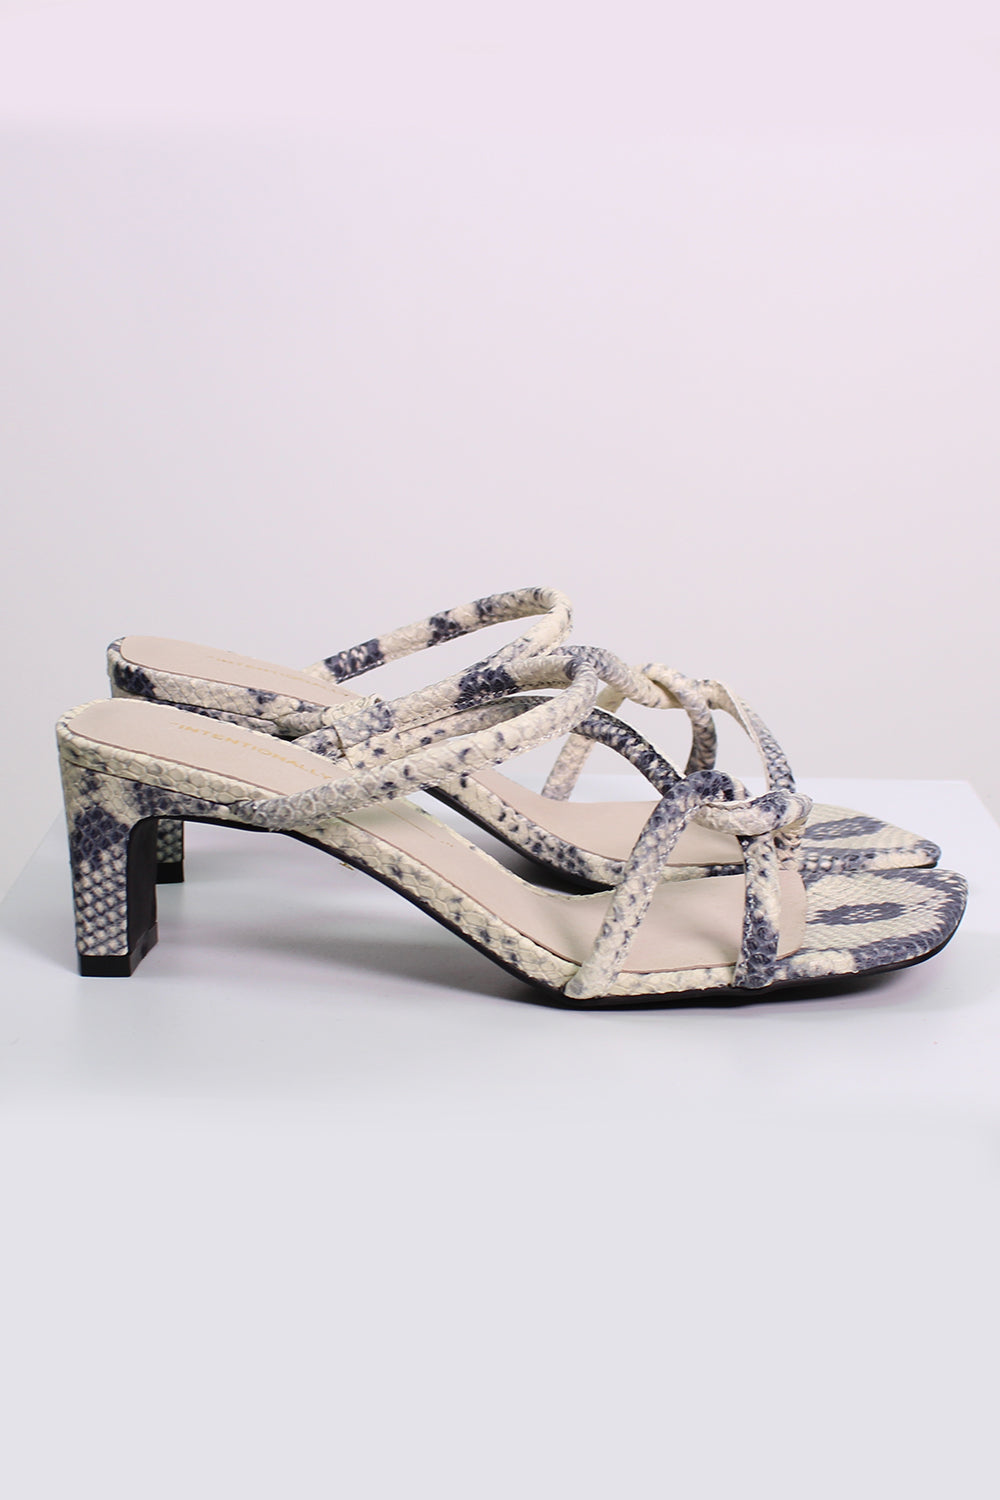 INTENTIONALLY BLANK - WILLOW GREY PYTHON WAS $339